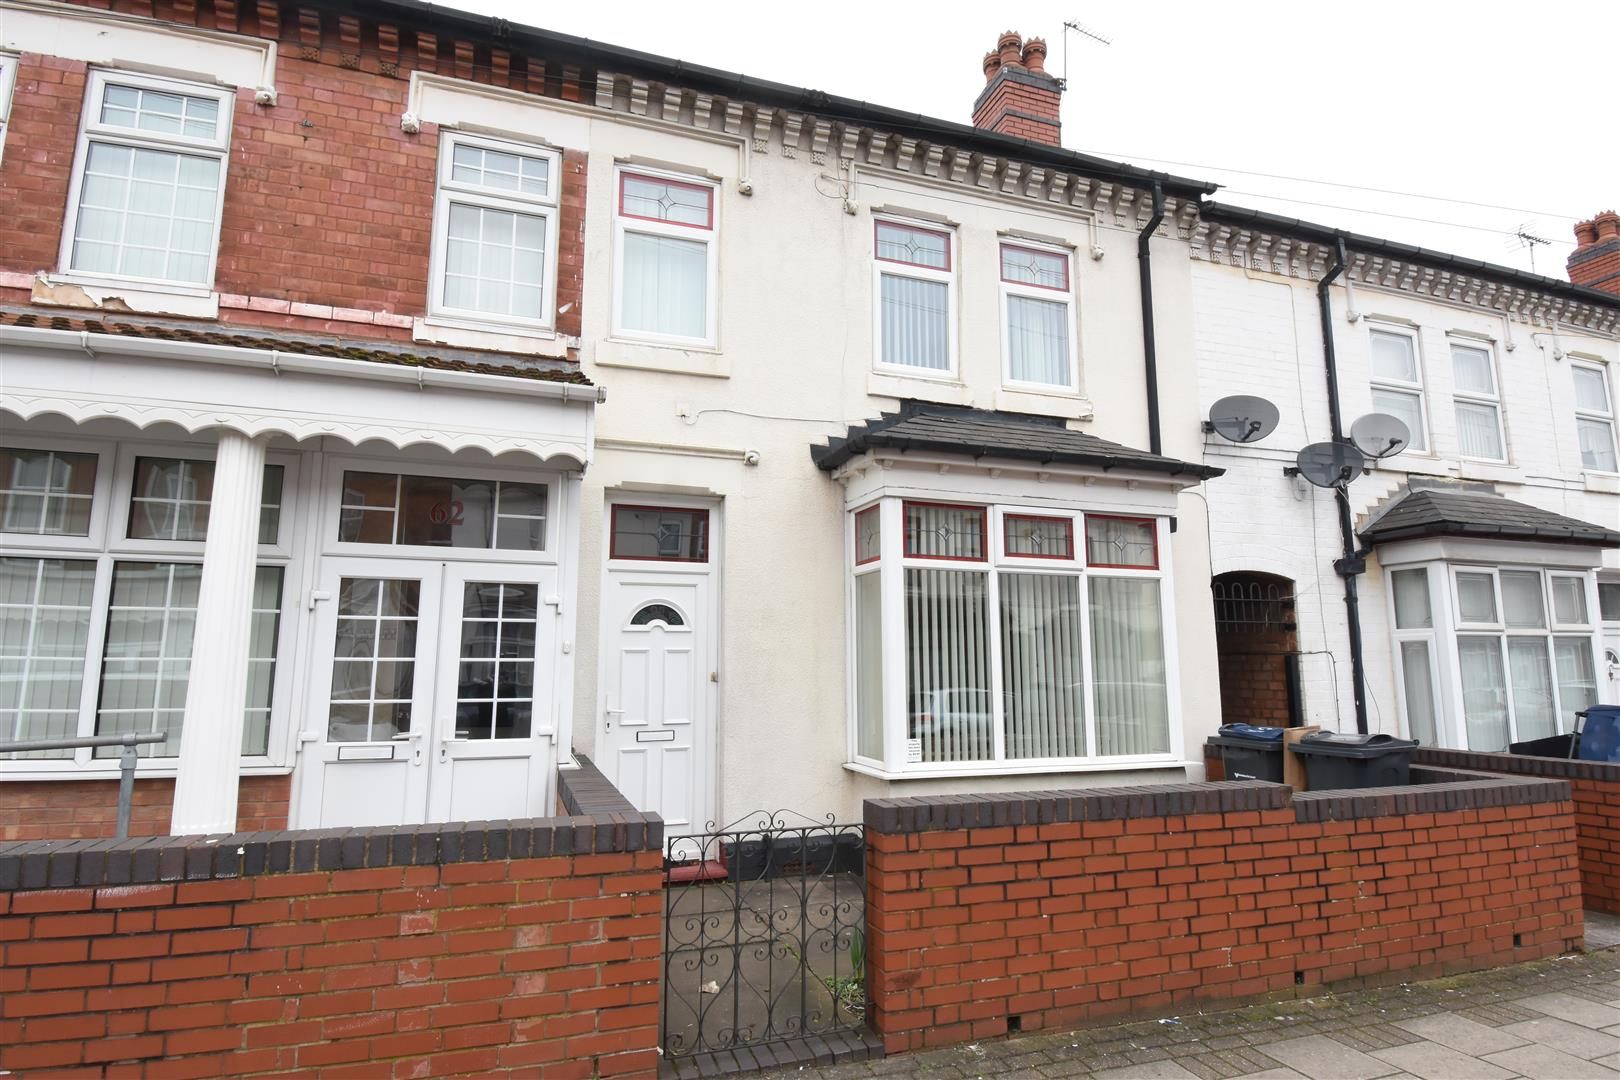 3 bed house for sale in Edmund Road, Alum Rock, Birmingham - Property Image 1